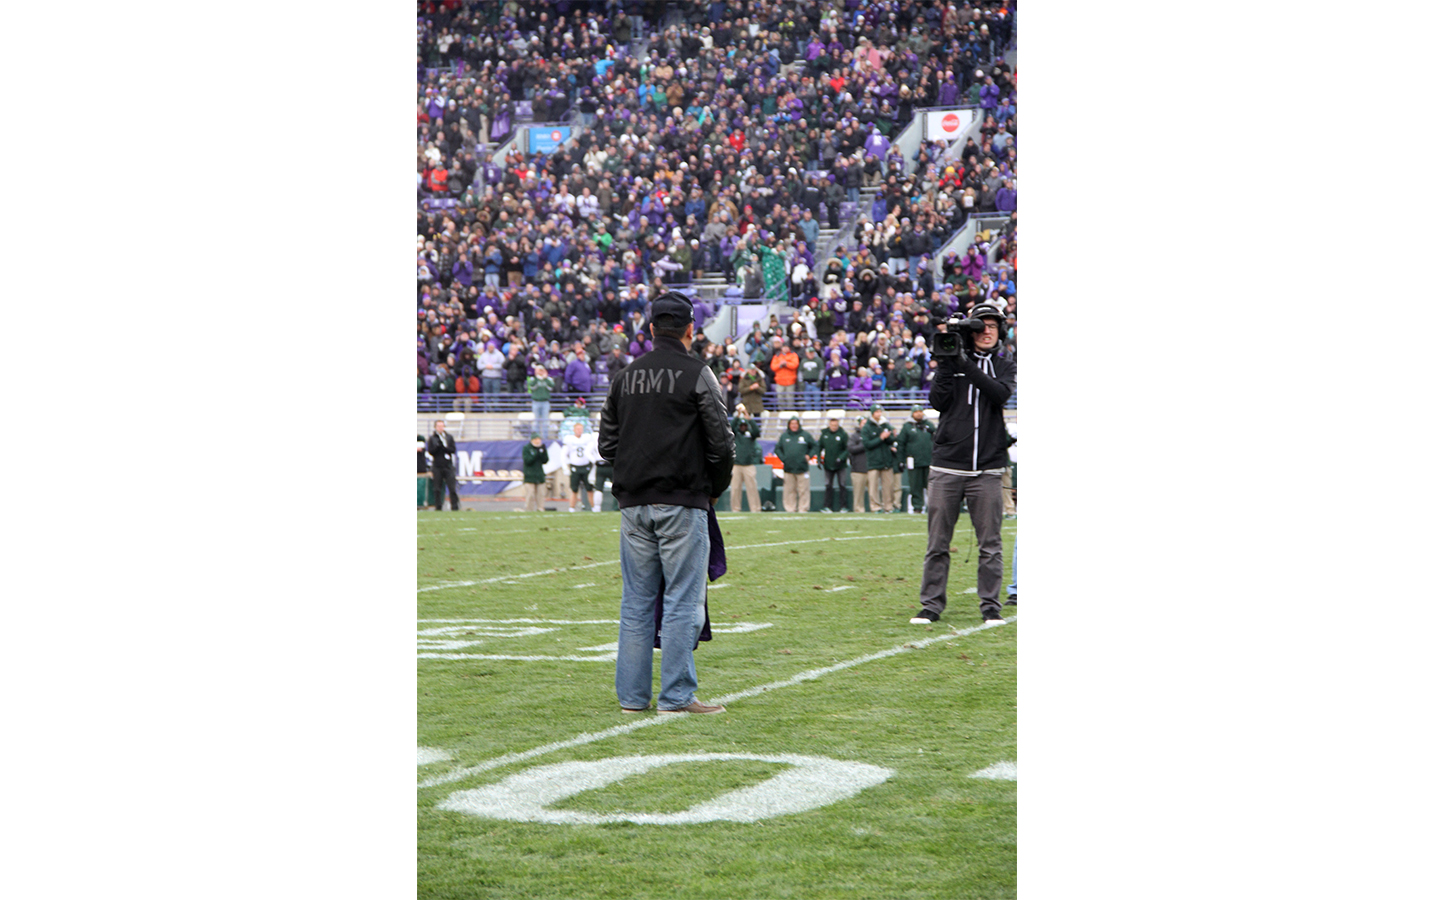 Northwestern University recognizes a veteran at an October 2017 football game. (Courtesy Jianing He)